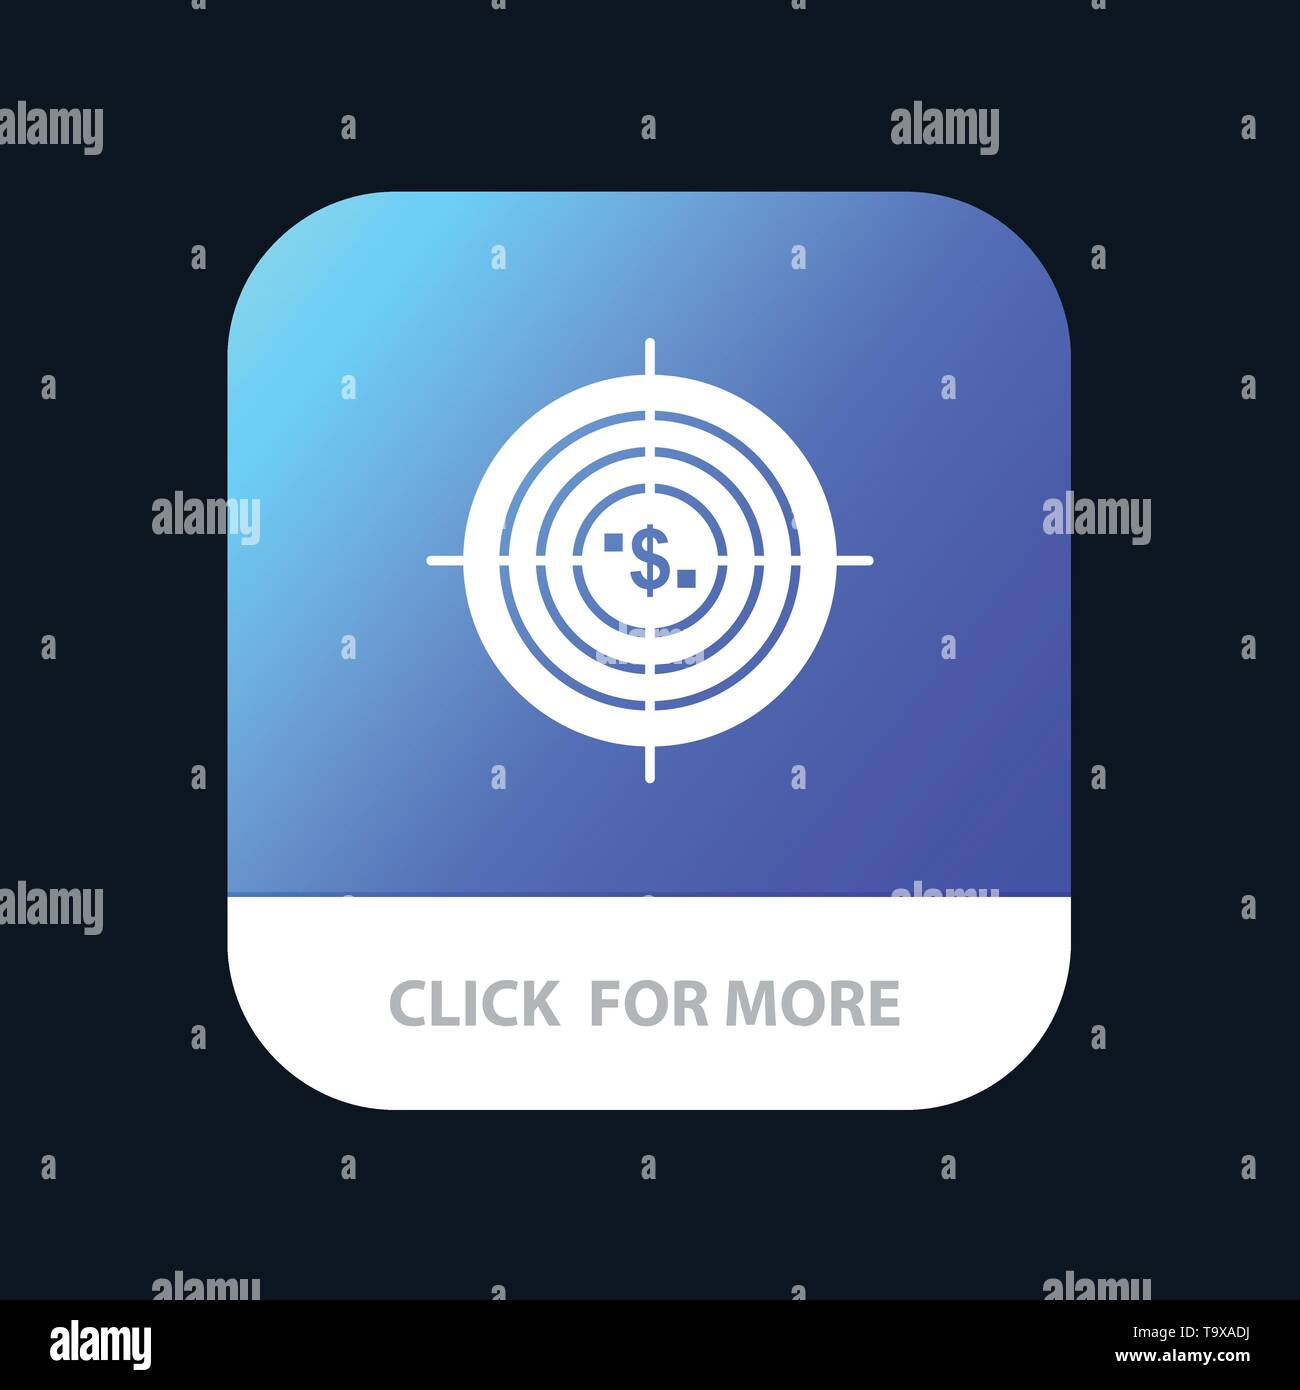 Target, Aim, Business, Cash, Financial, Funds, Hunting, Money Mobile App Button. Android and IOS Glyph Version - Stock Image